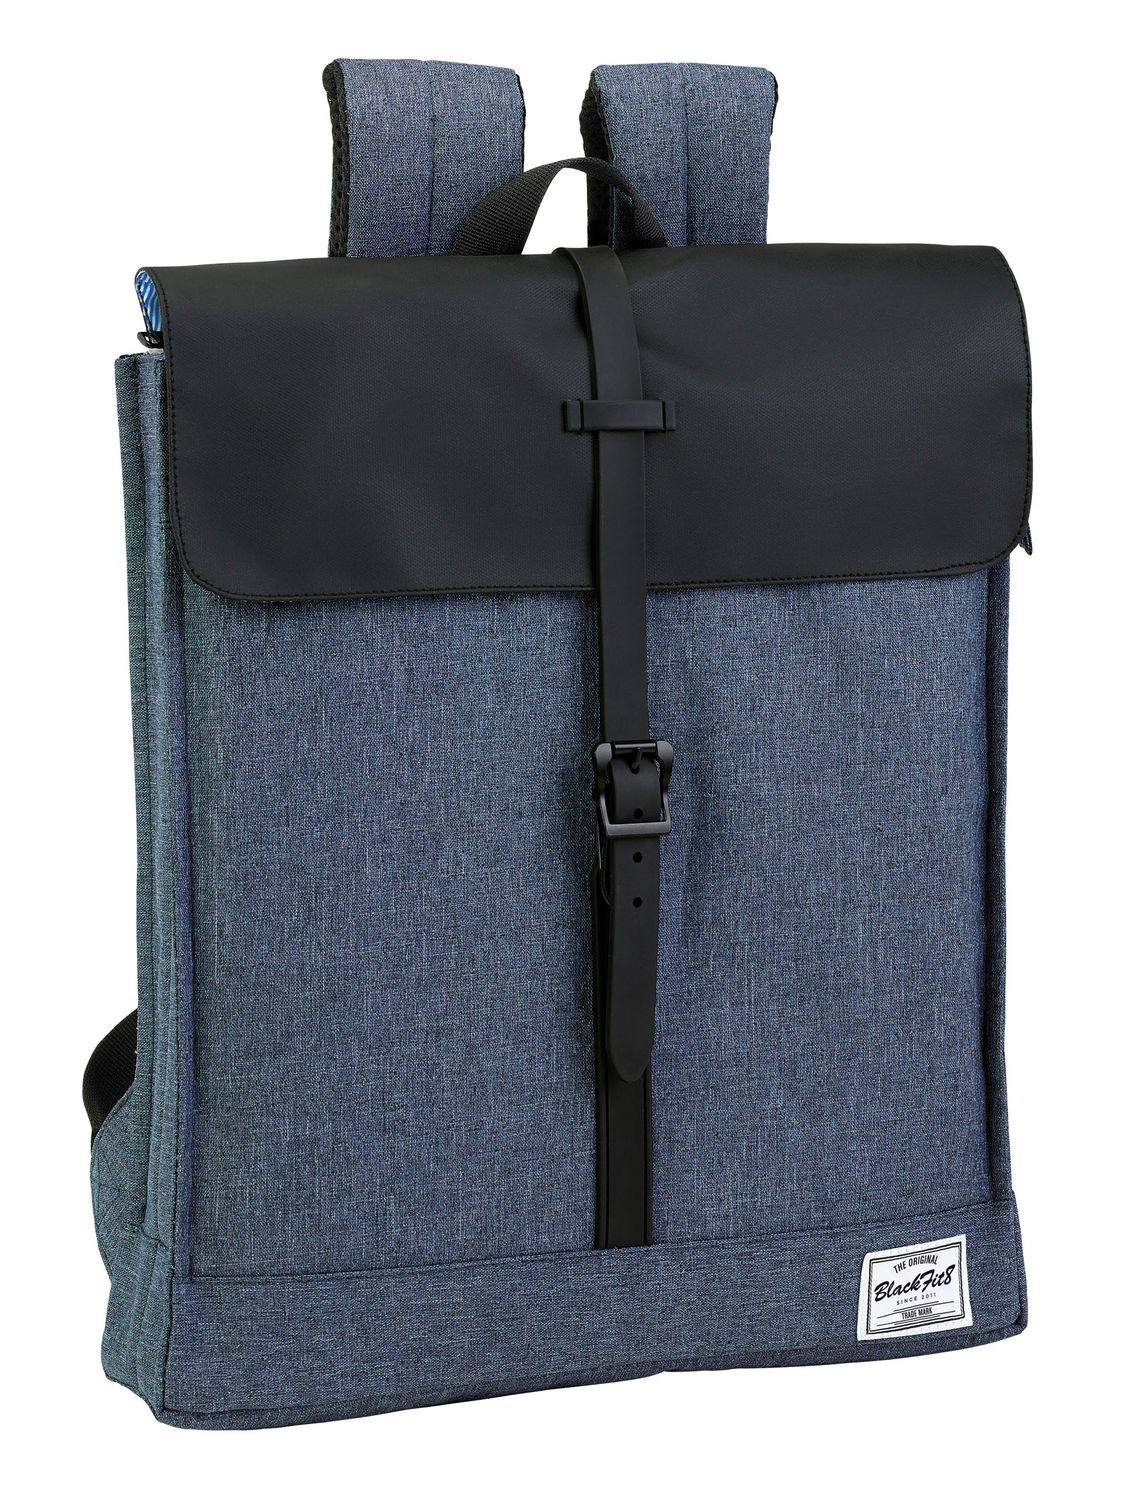 "Blackfit Black & Blue Laptop Backpack 14.1"" – image 1"